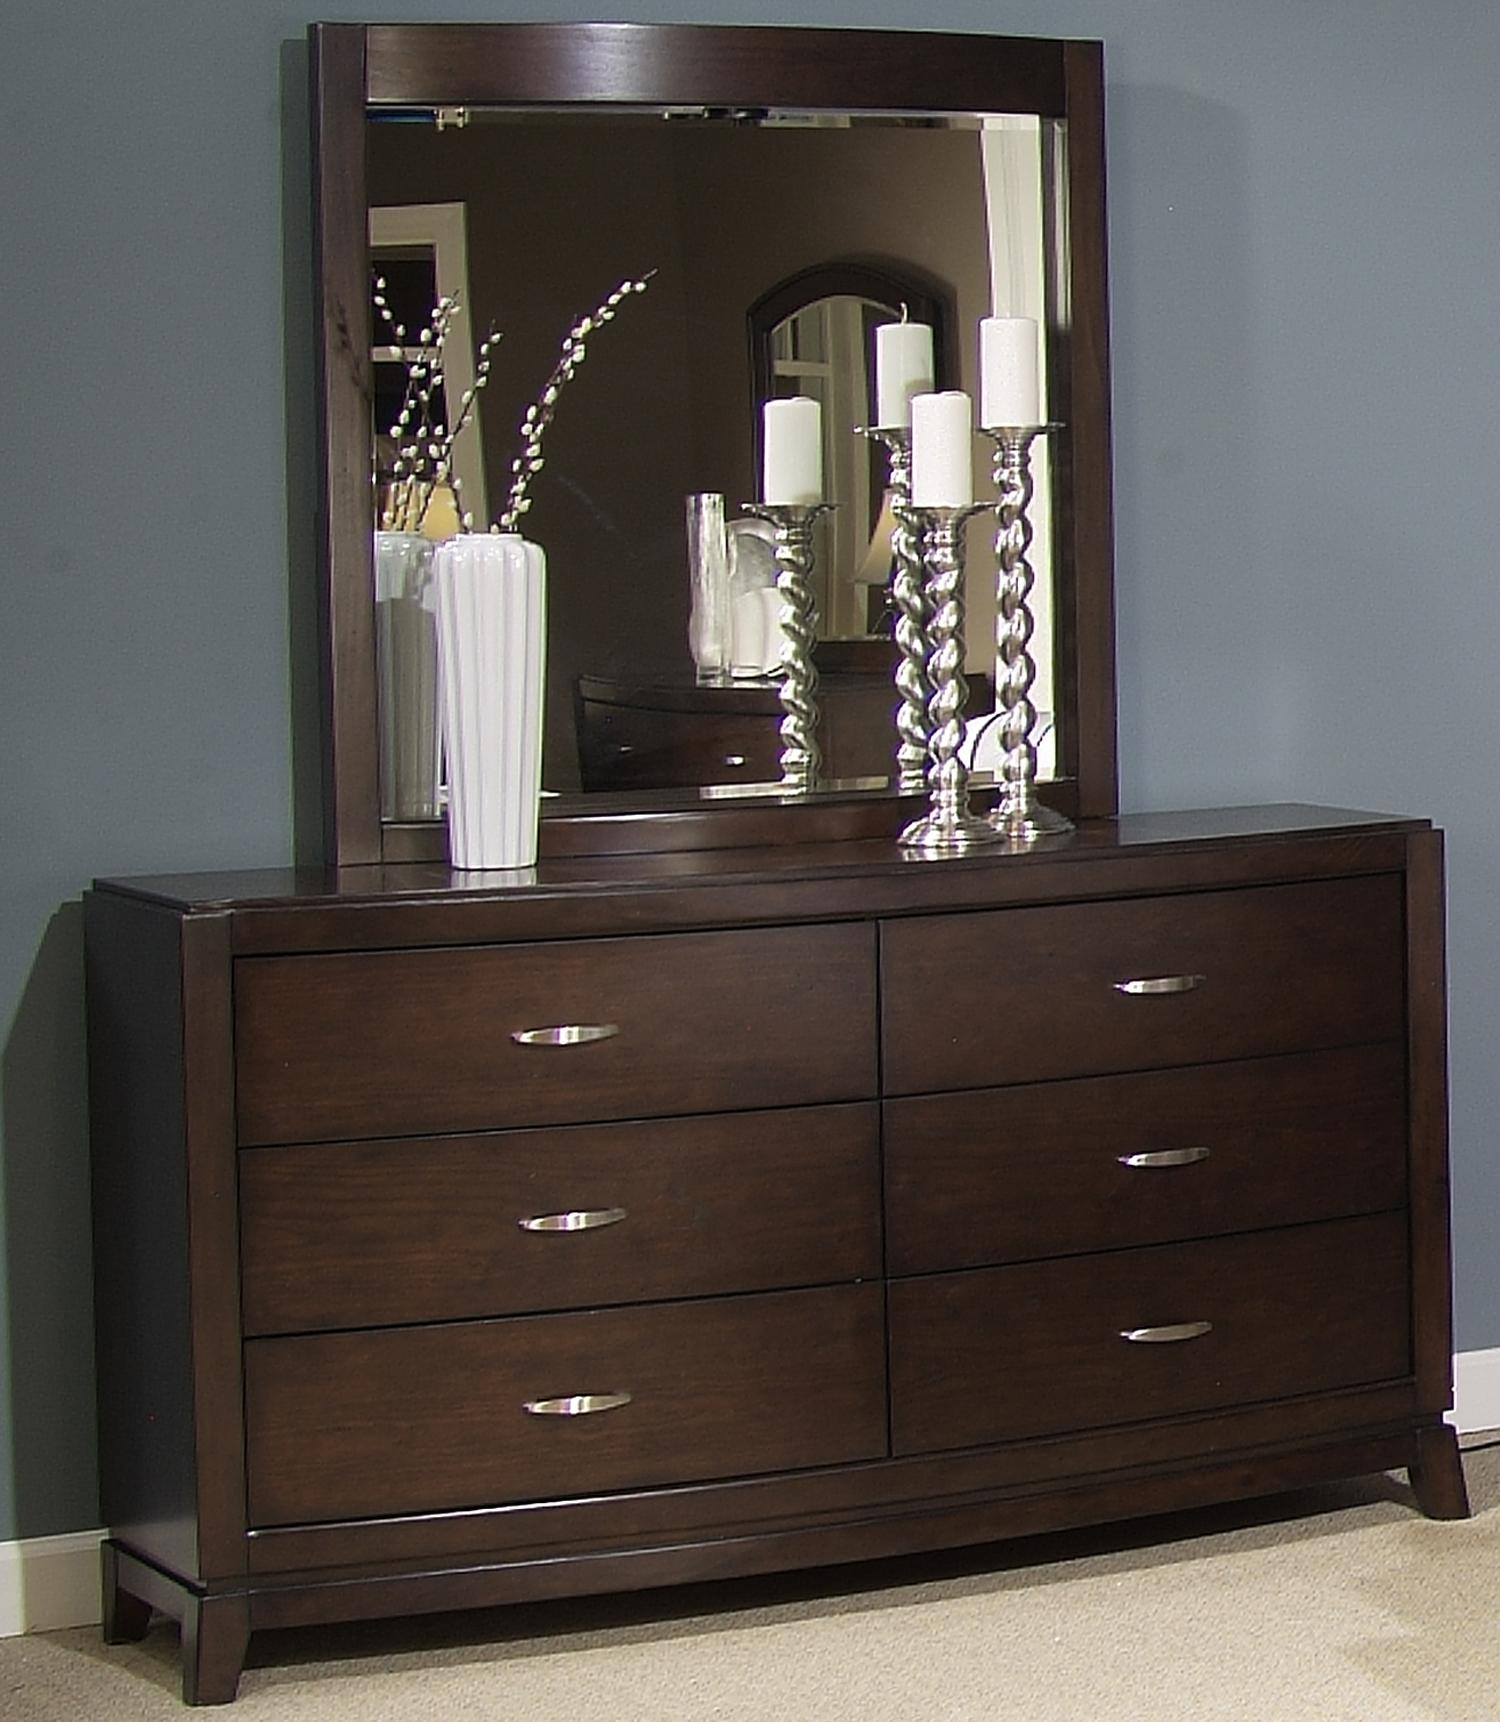 Dresser   Lighted Mirror Set. Dresser   Lighted Mirror Set by Liberty Furniture   Wolf and